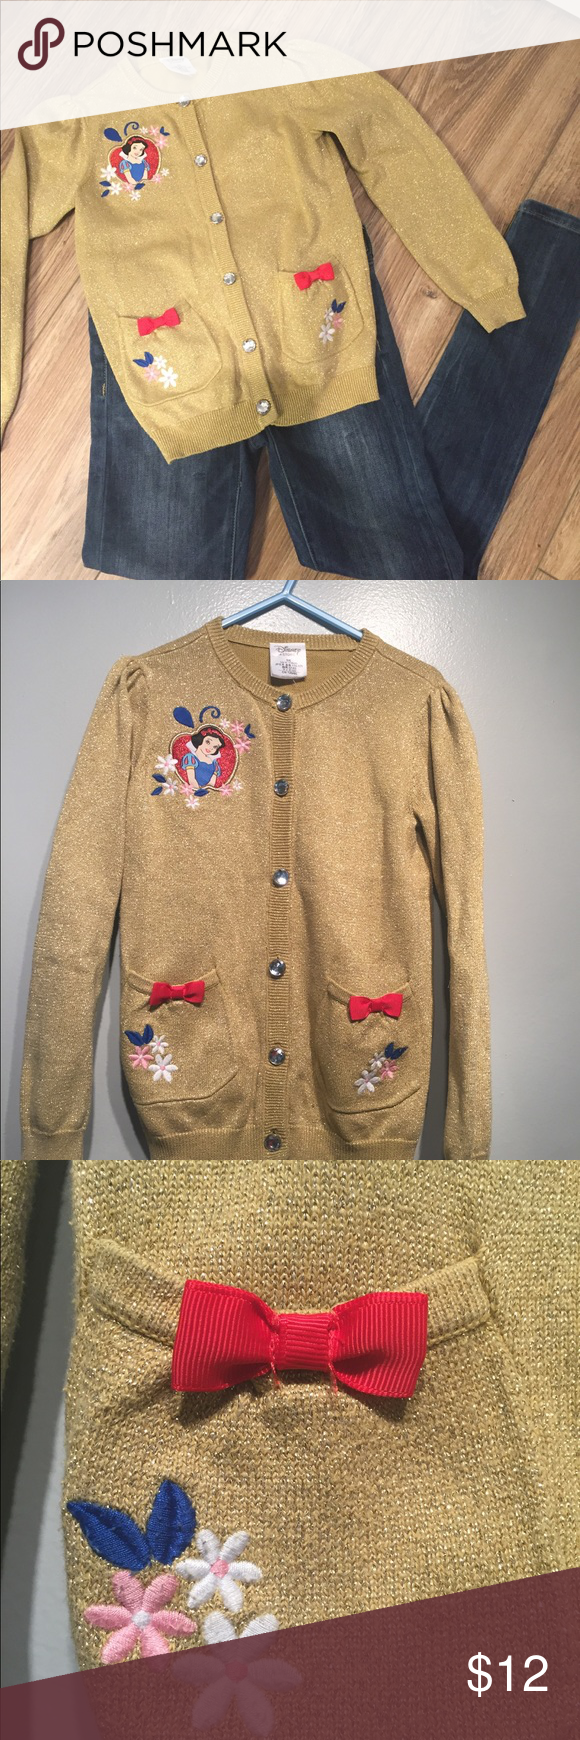 HP👗Snow White Disney gold cardigan 5/6 pink red | Gold cardigan ...